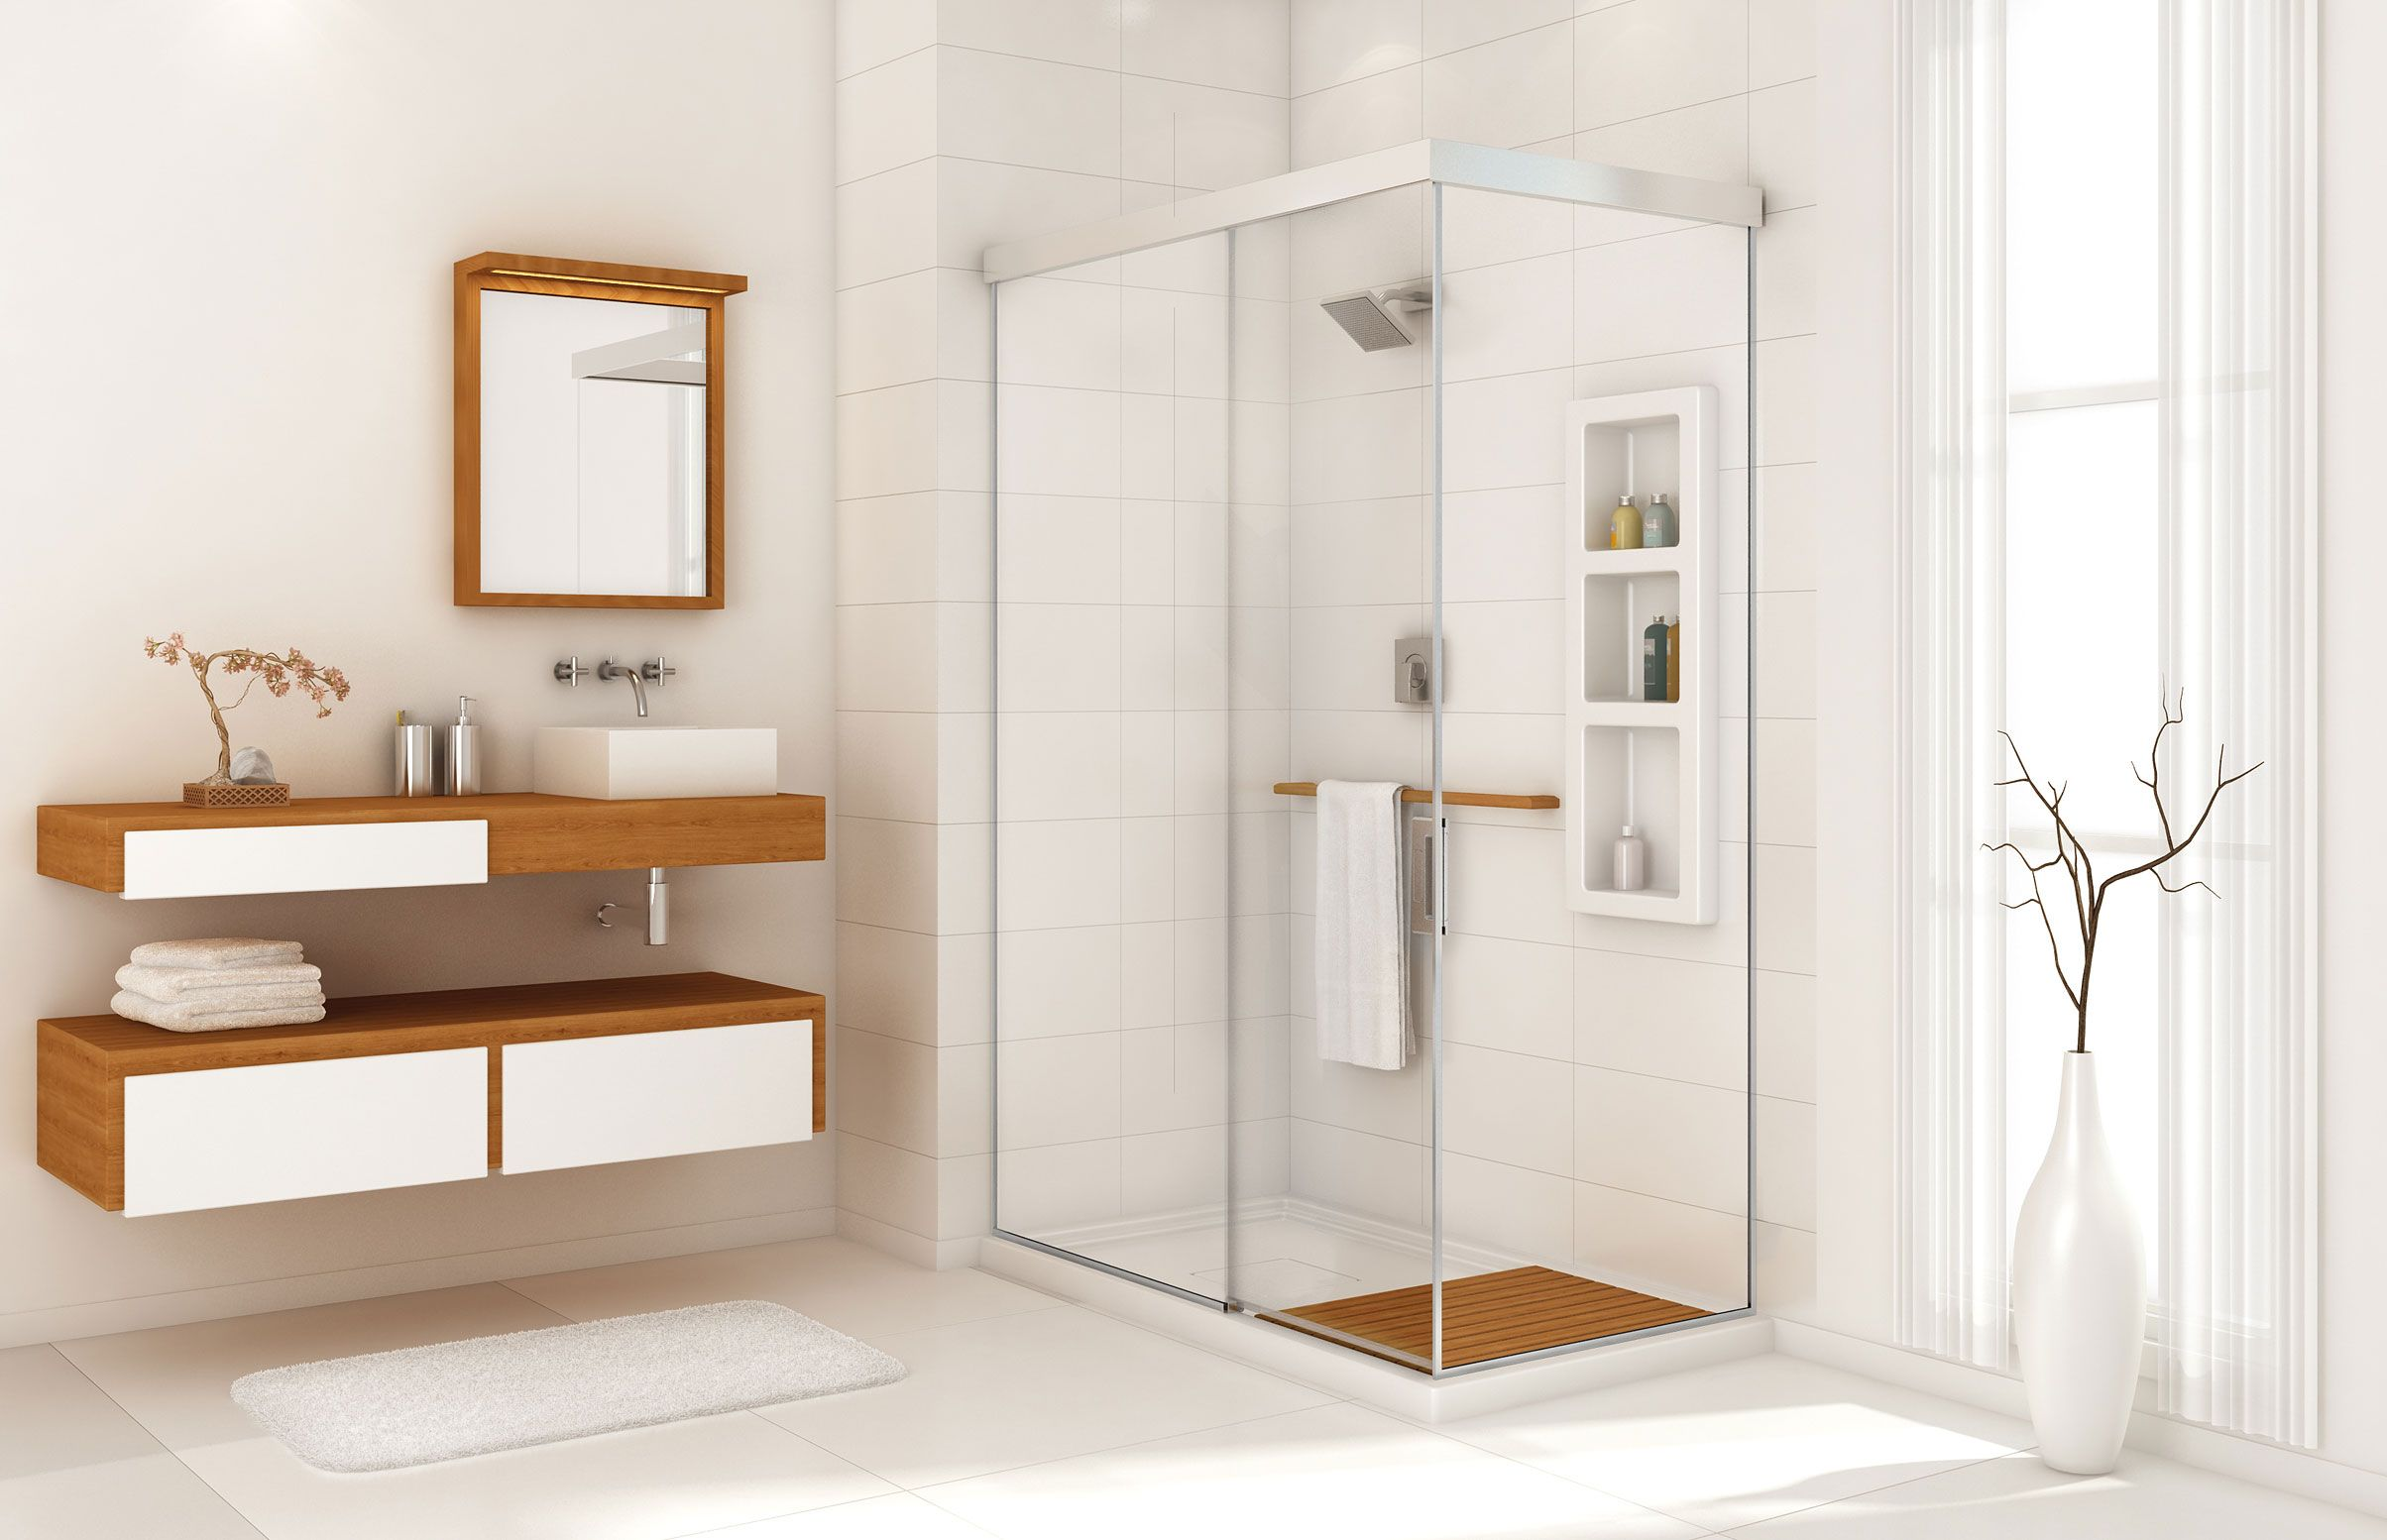 Evidence 6034 C Corner or Glass enclosures shower - MAAX | John ...